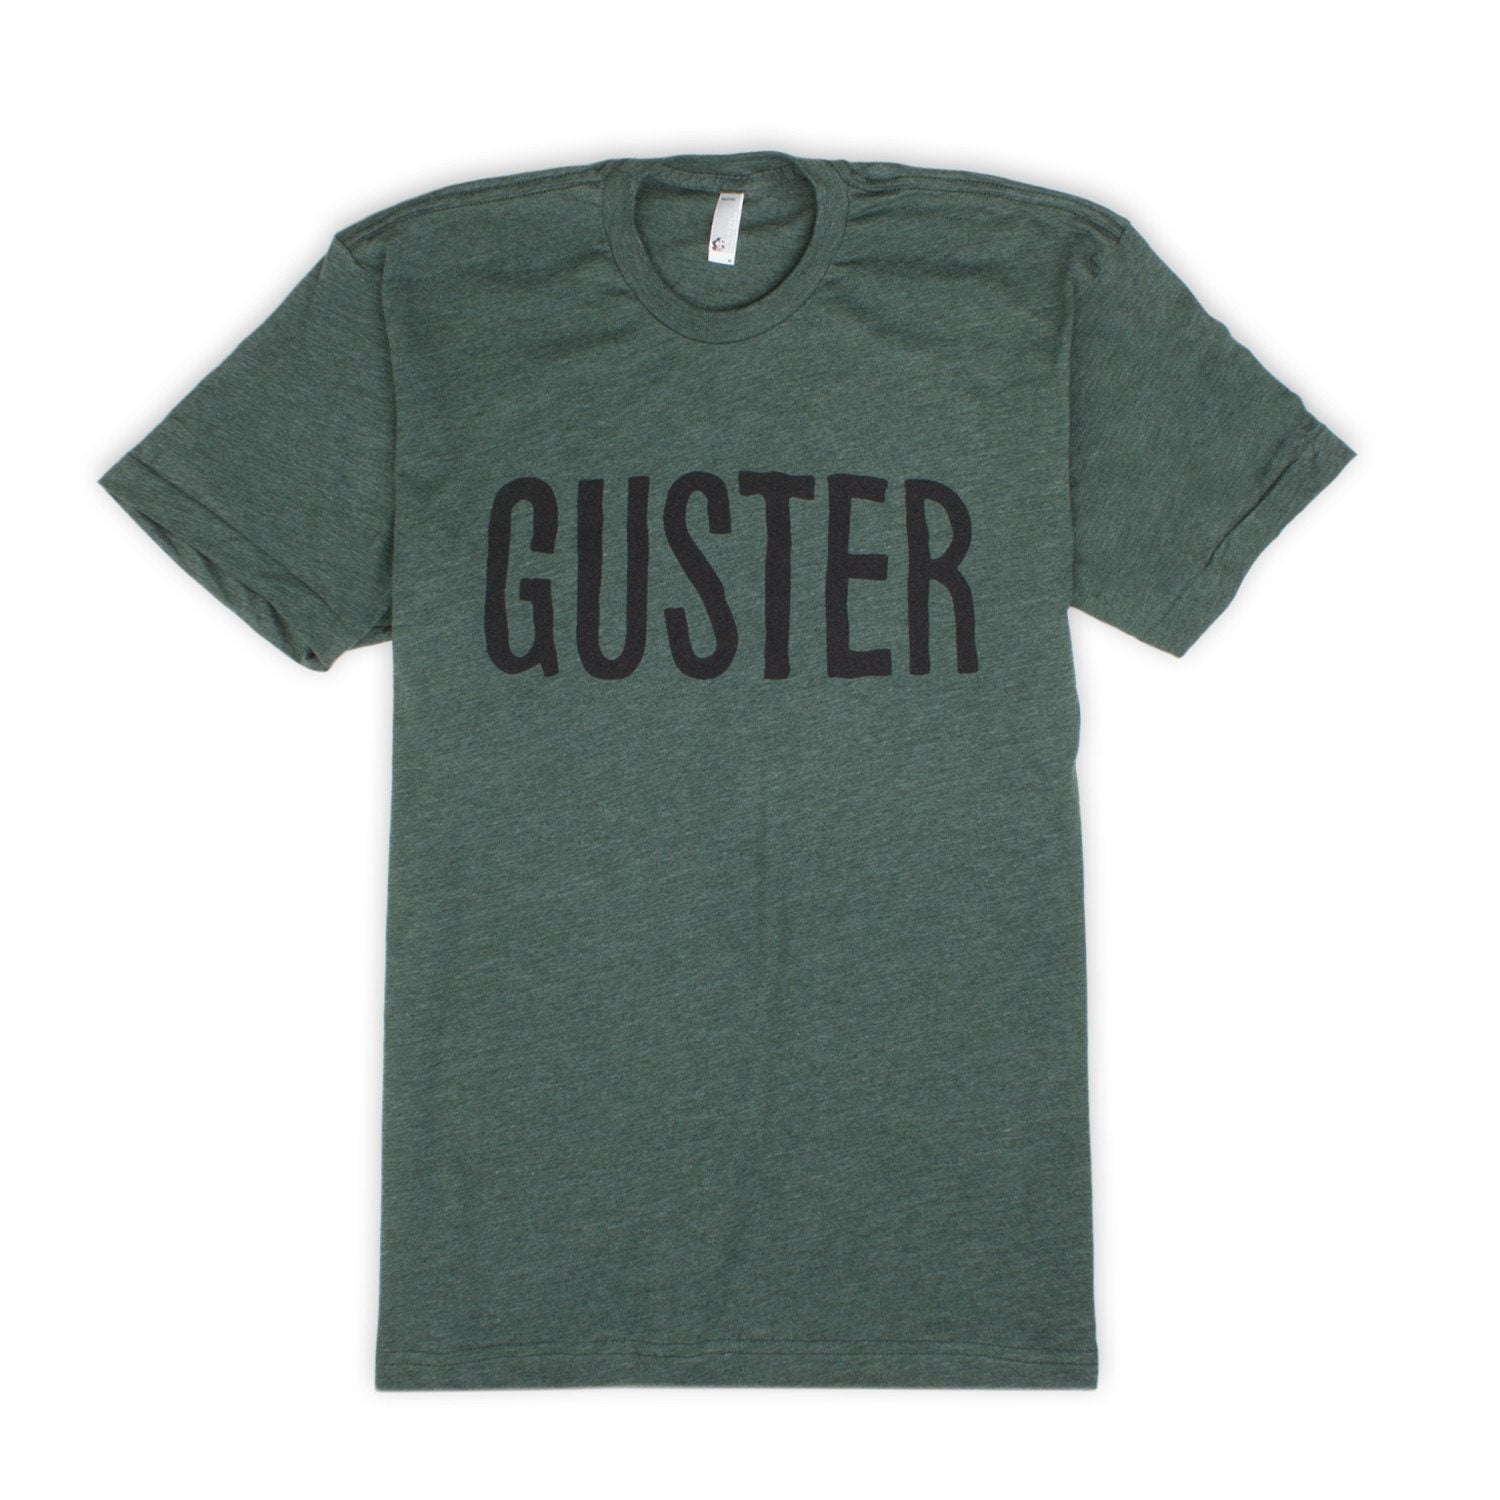 'Guster Text' T-Shirt - Heather Forest